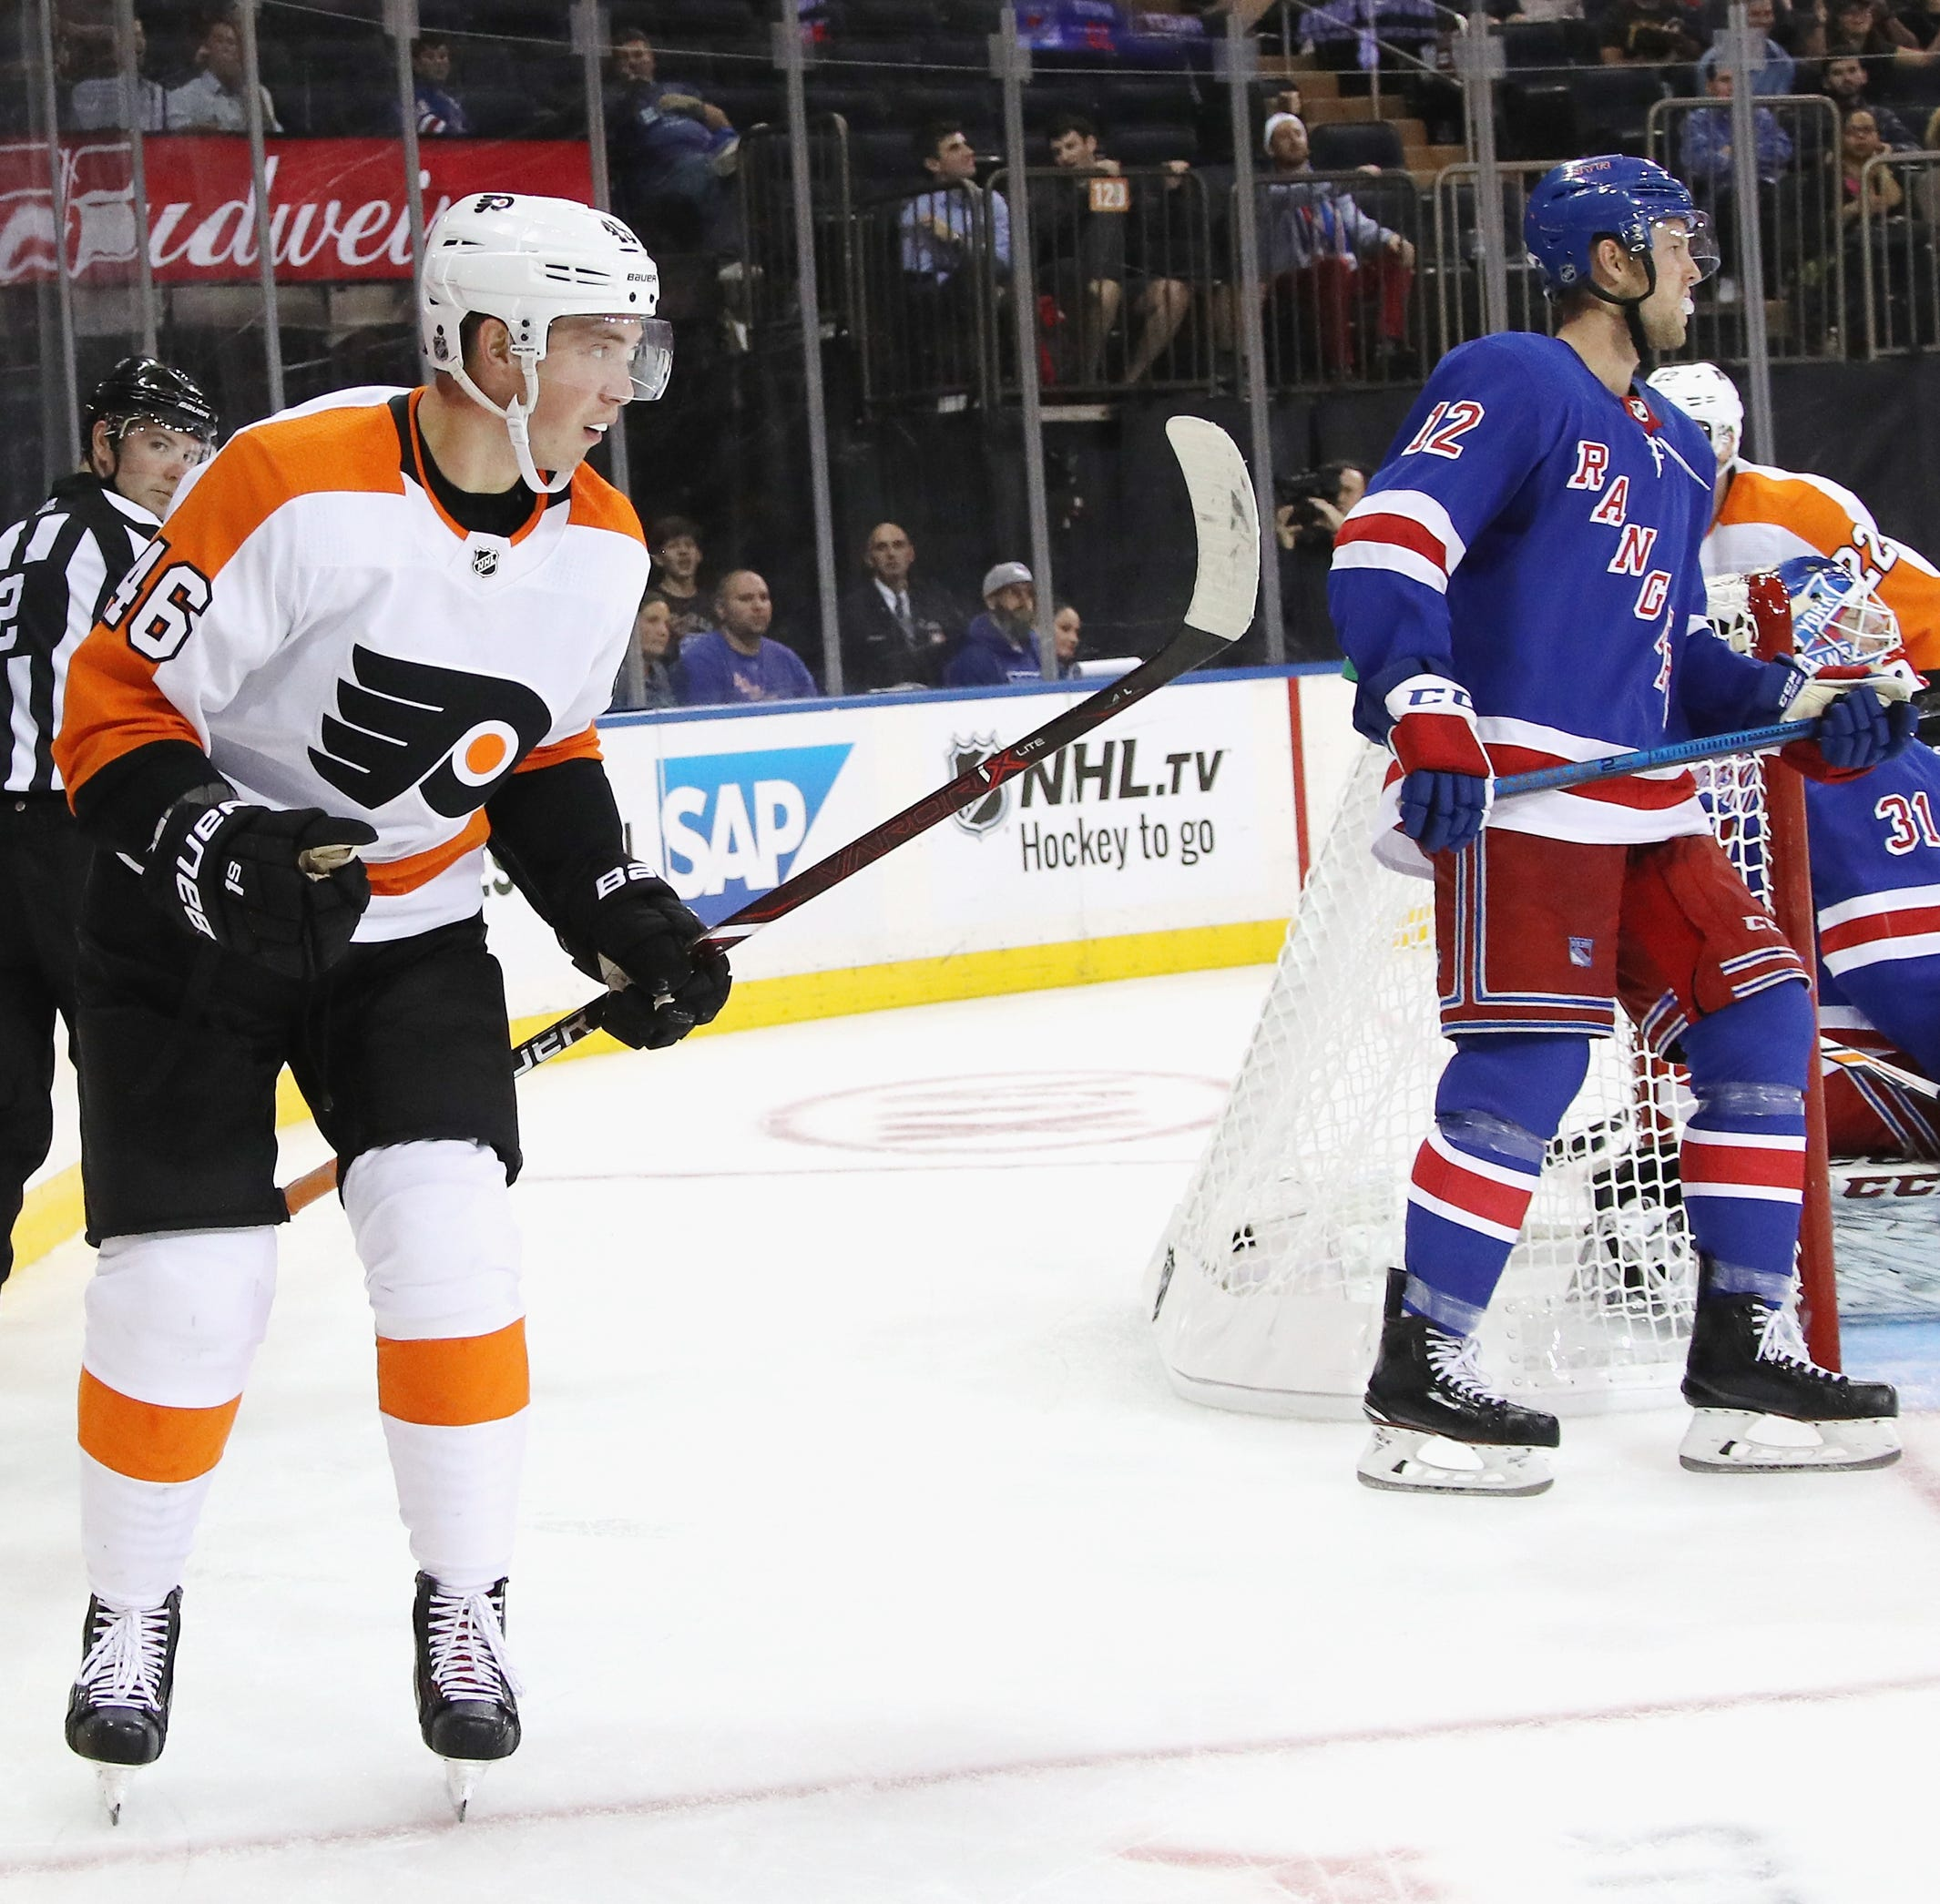 Flyers' roster race heating up for Jordan Weal, Mikhail Vorobyev